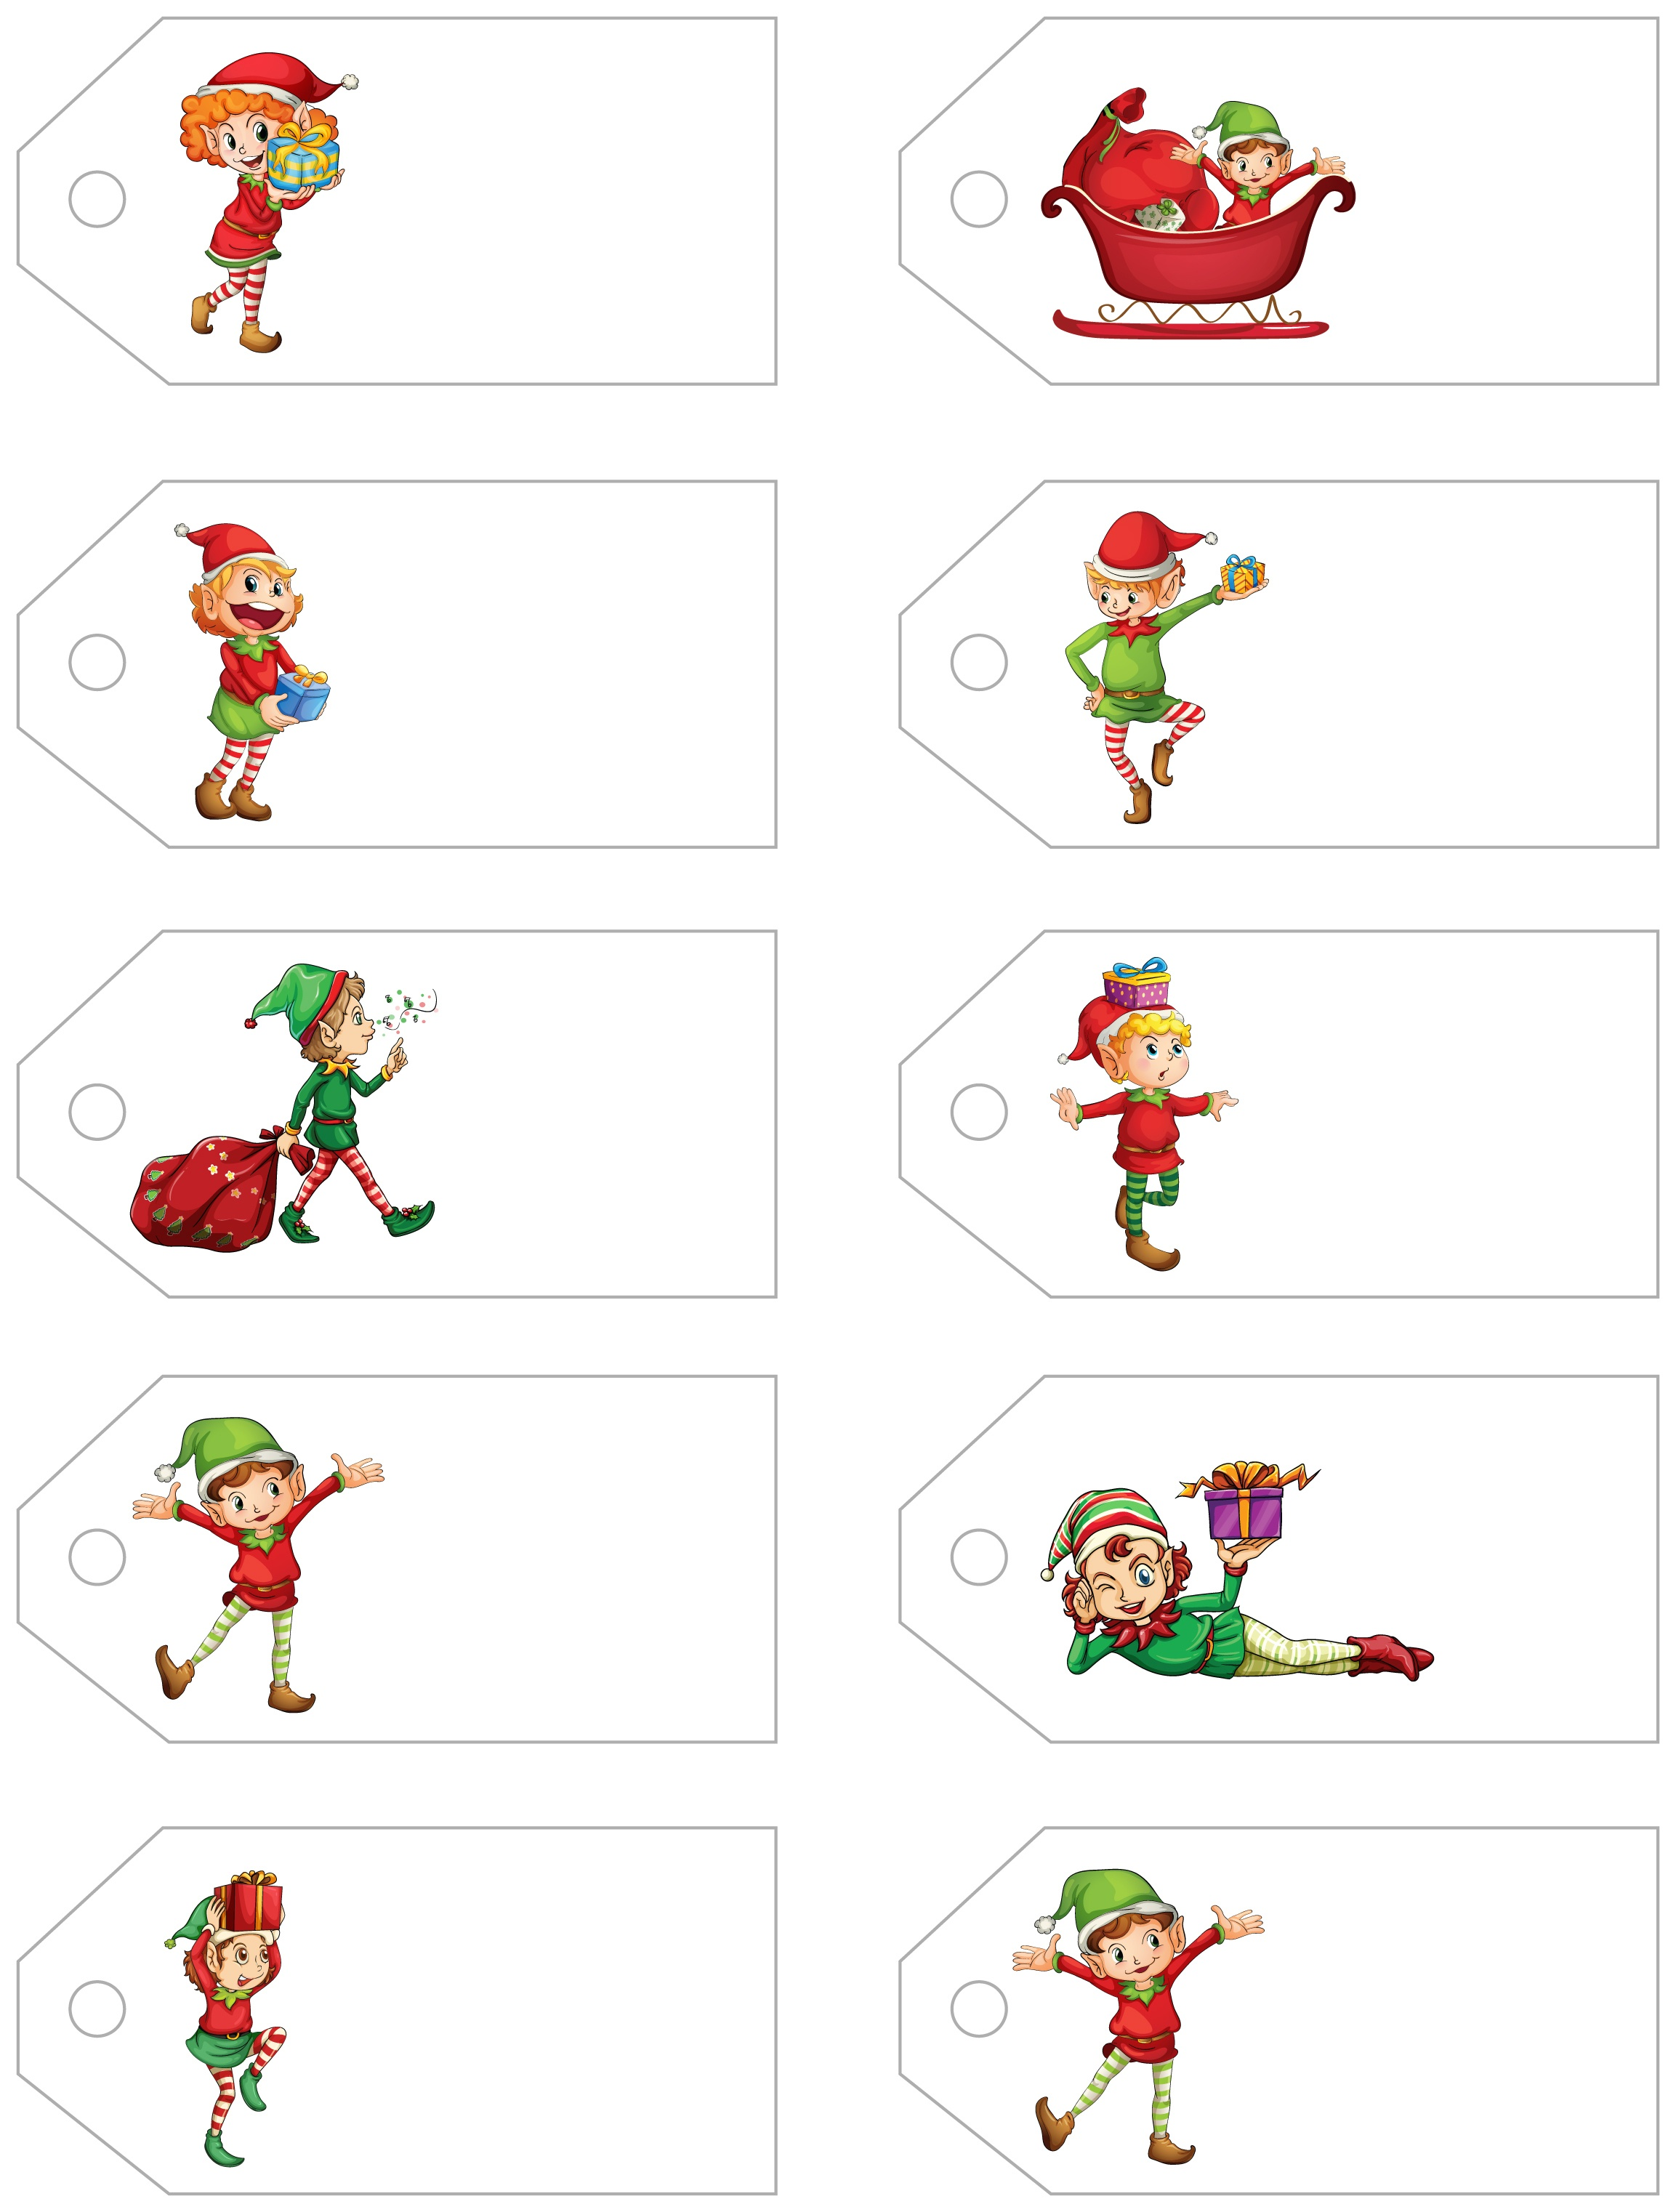 Santa's Little Gift To You! Free Printable Gift Tags And Labels - Free Printable Santa Gift Tags